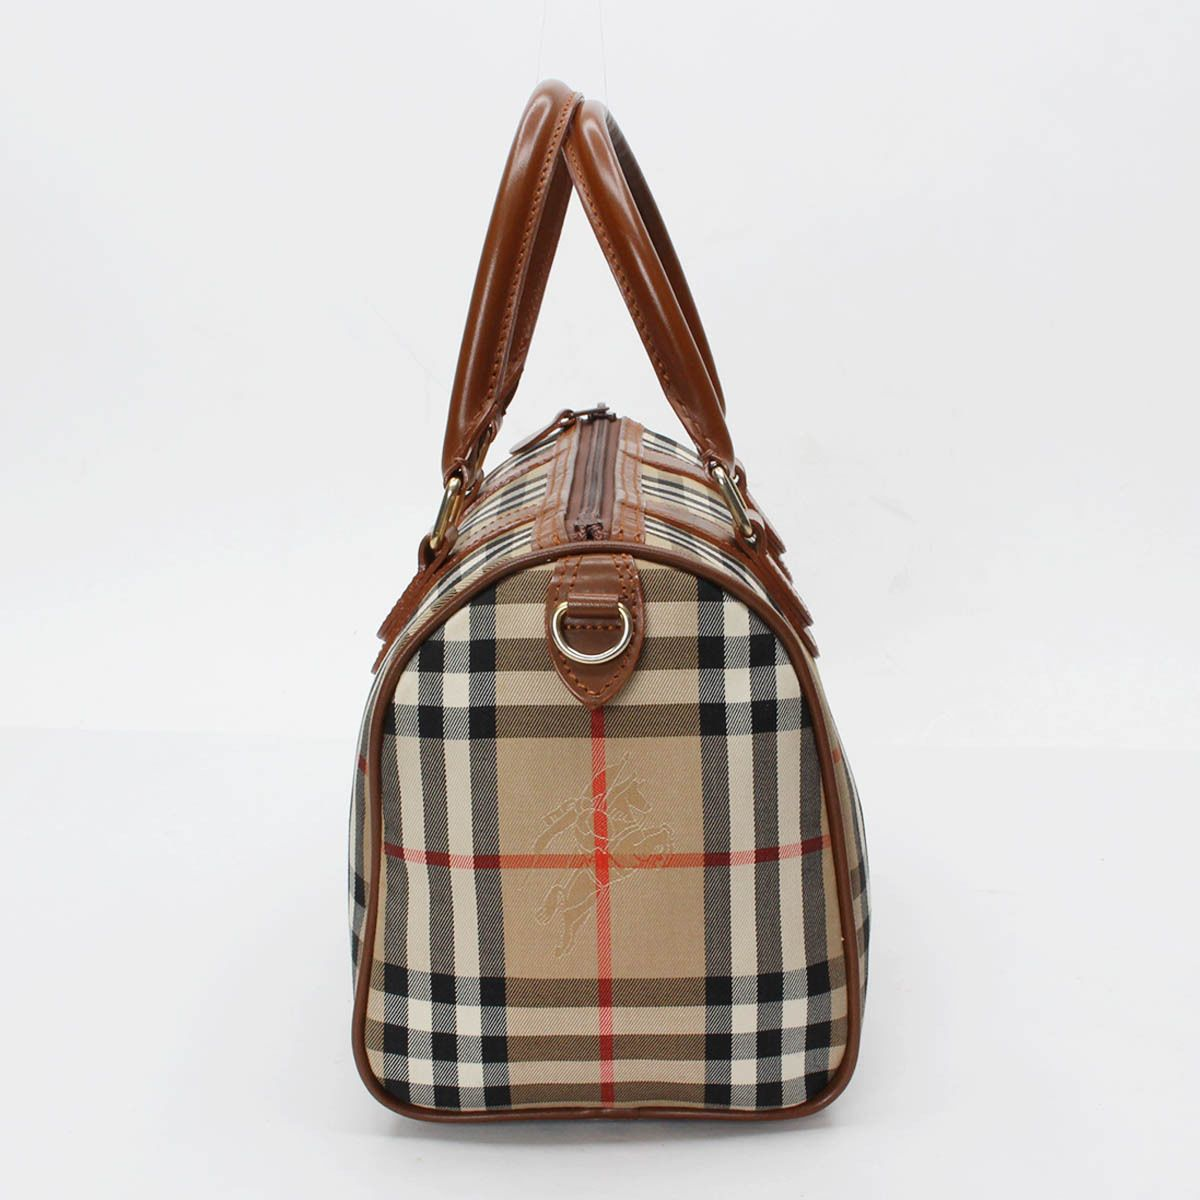 BURBERRY-2Way-Mini-Boston-Hand-Bag-Cross-Body-Bag 2 - Copy ... a5f90a468686f